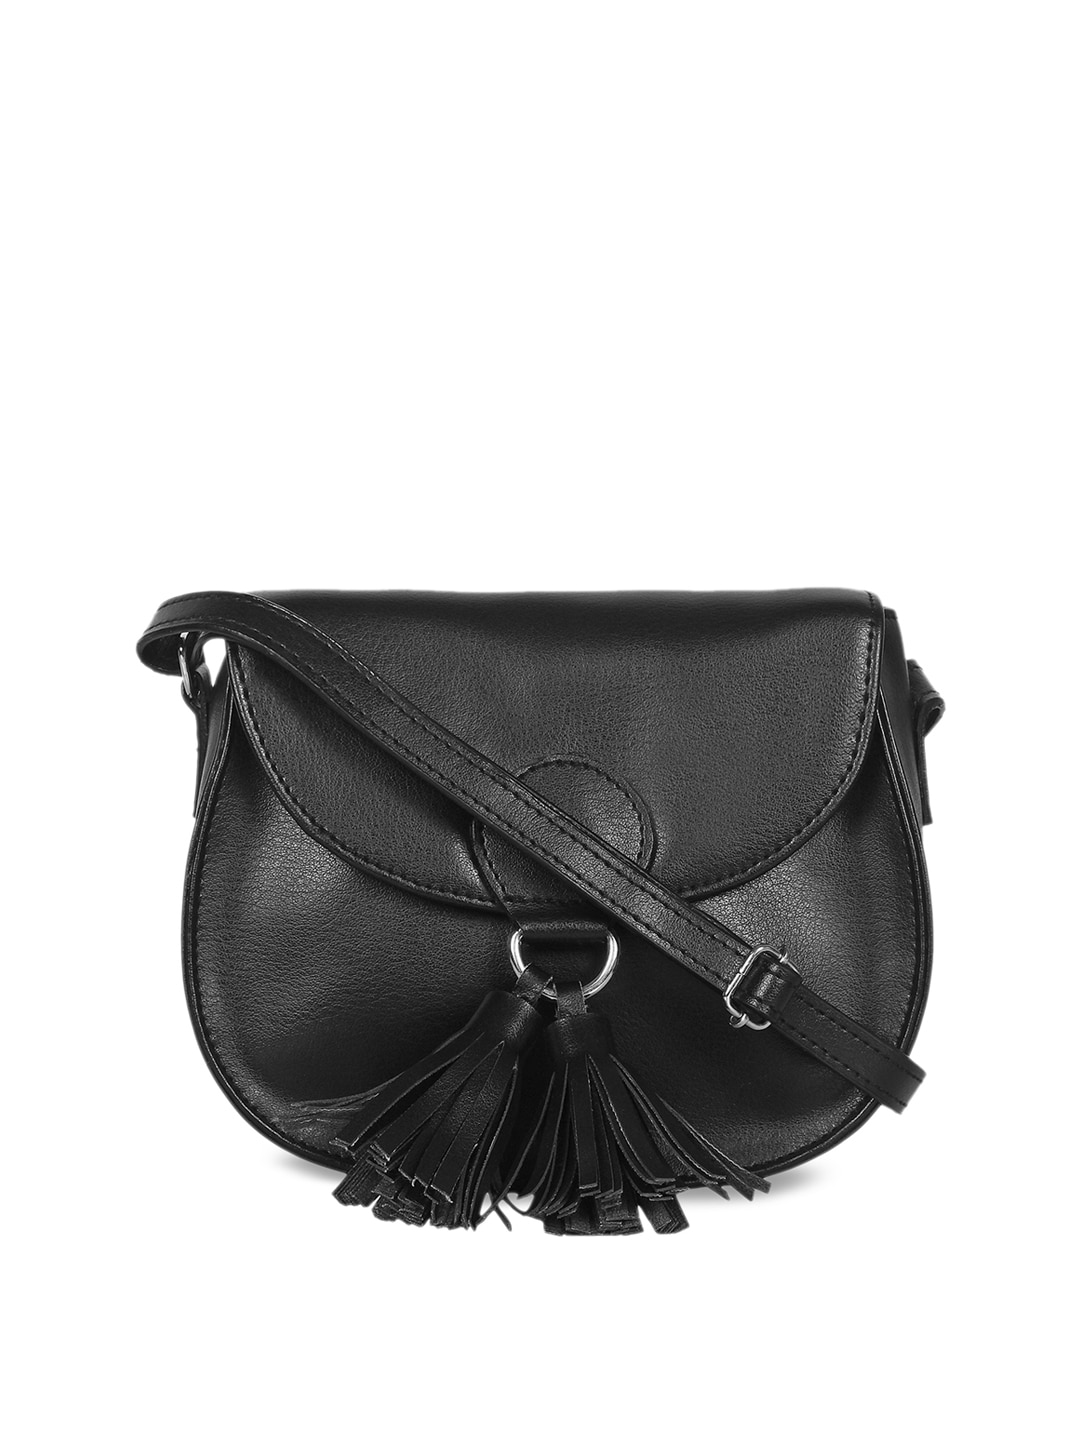 dc647056e2 Anekaant Bags - Buy Anekaant Bags online in India